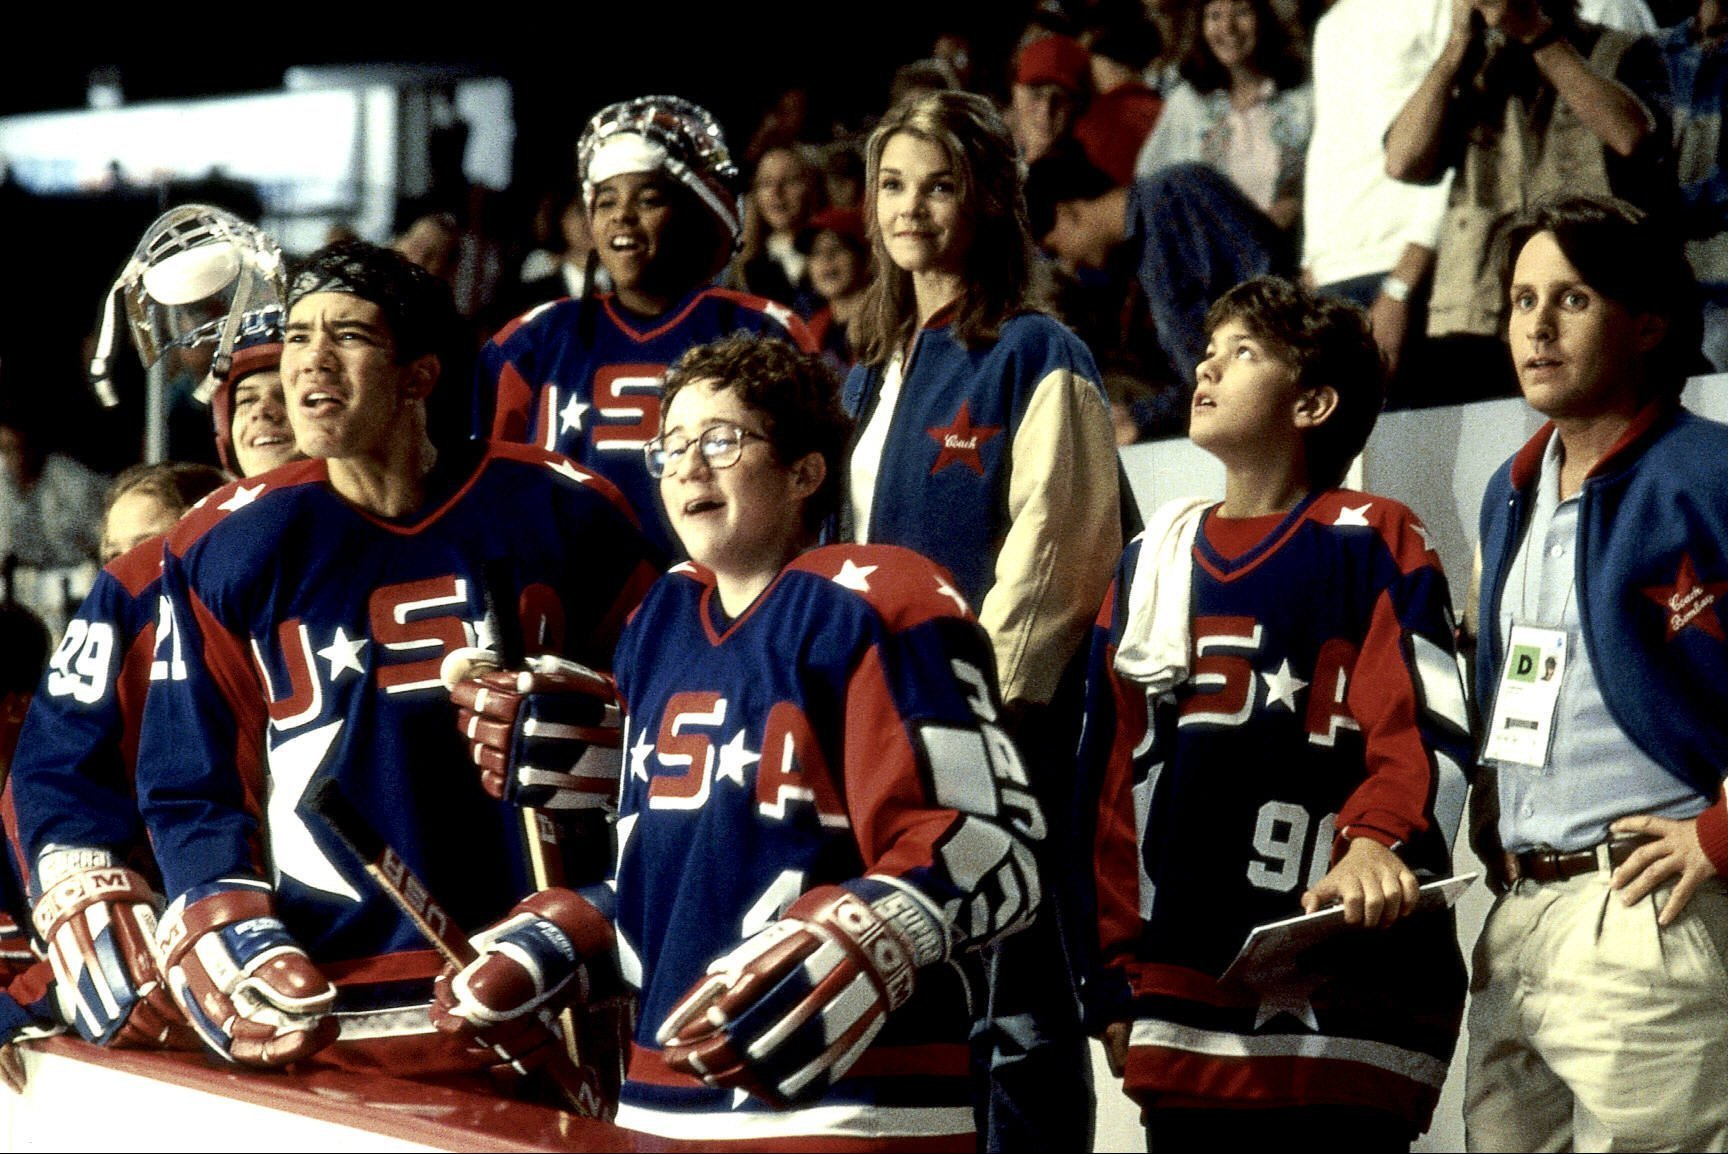 Top 10 Best Sports Teams from Movies